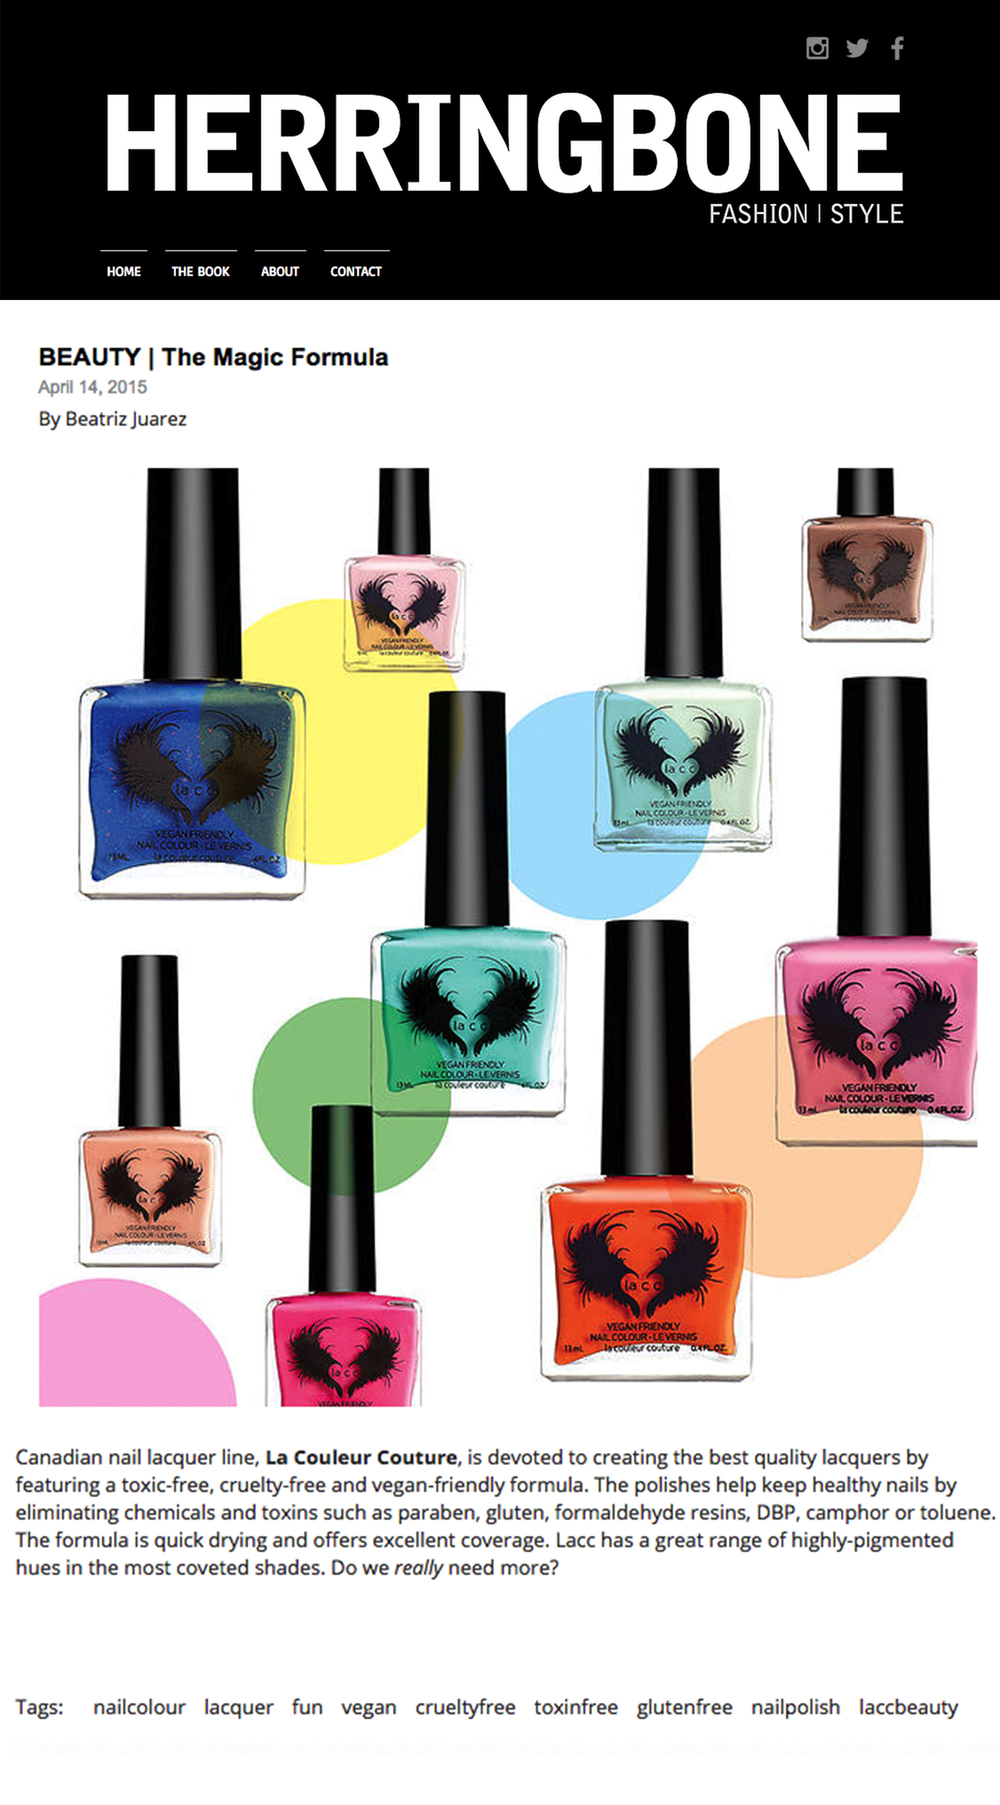 Herringbone Magazine — la couleur couture: 12-free vegan nail polish